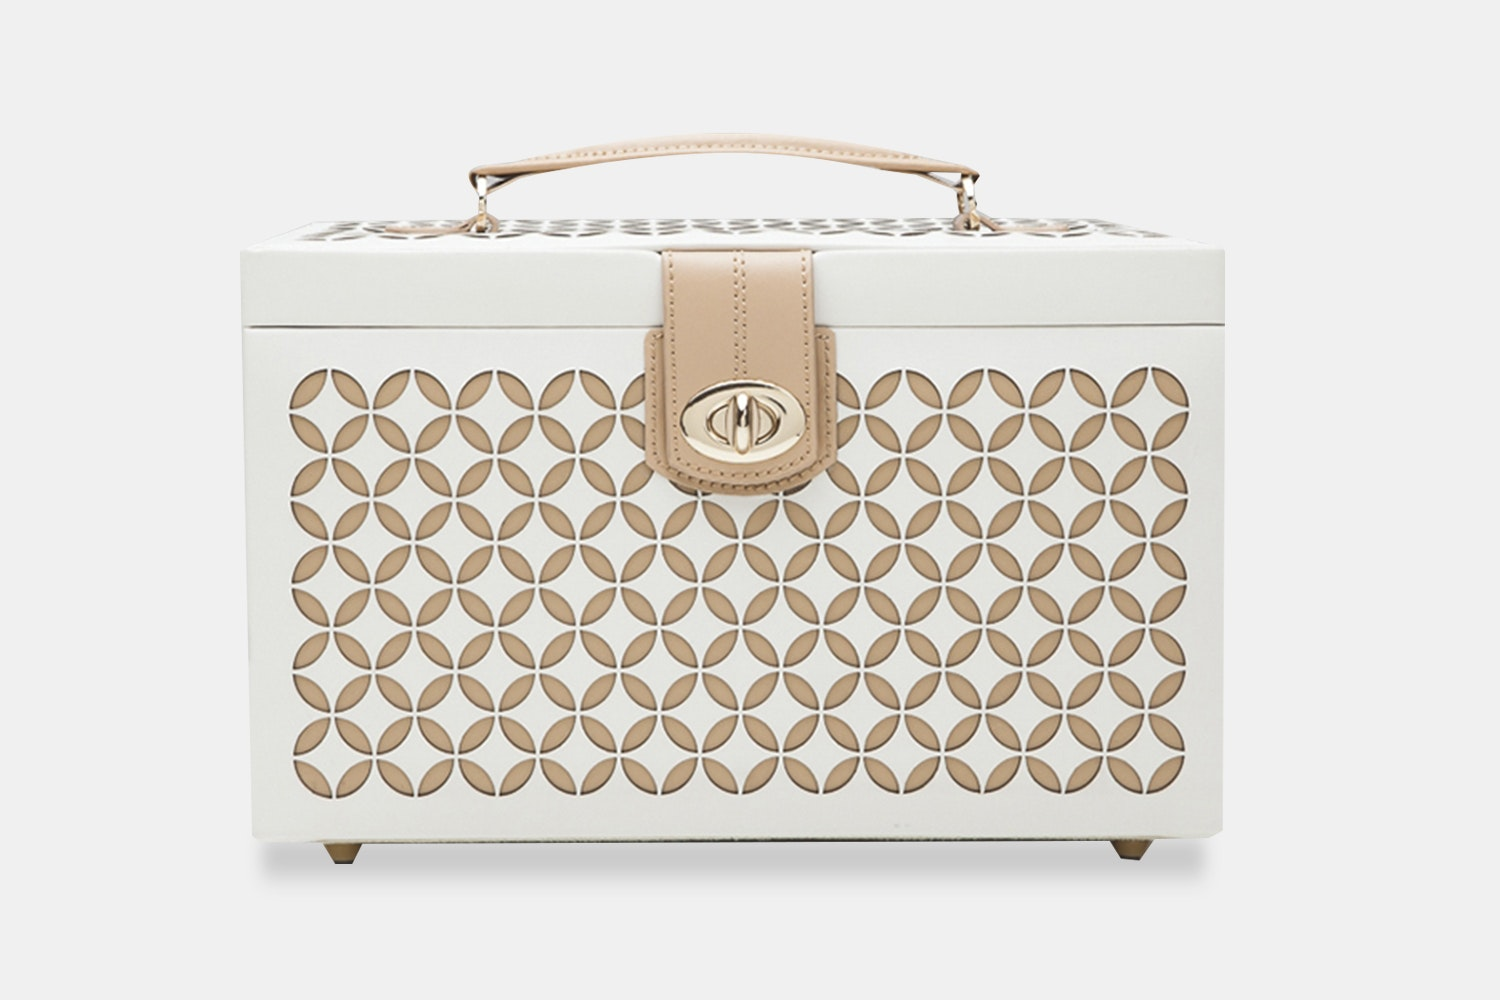 Medium Jewelry Box - Cream (+ $75)